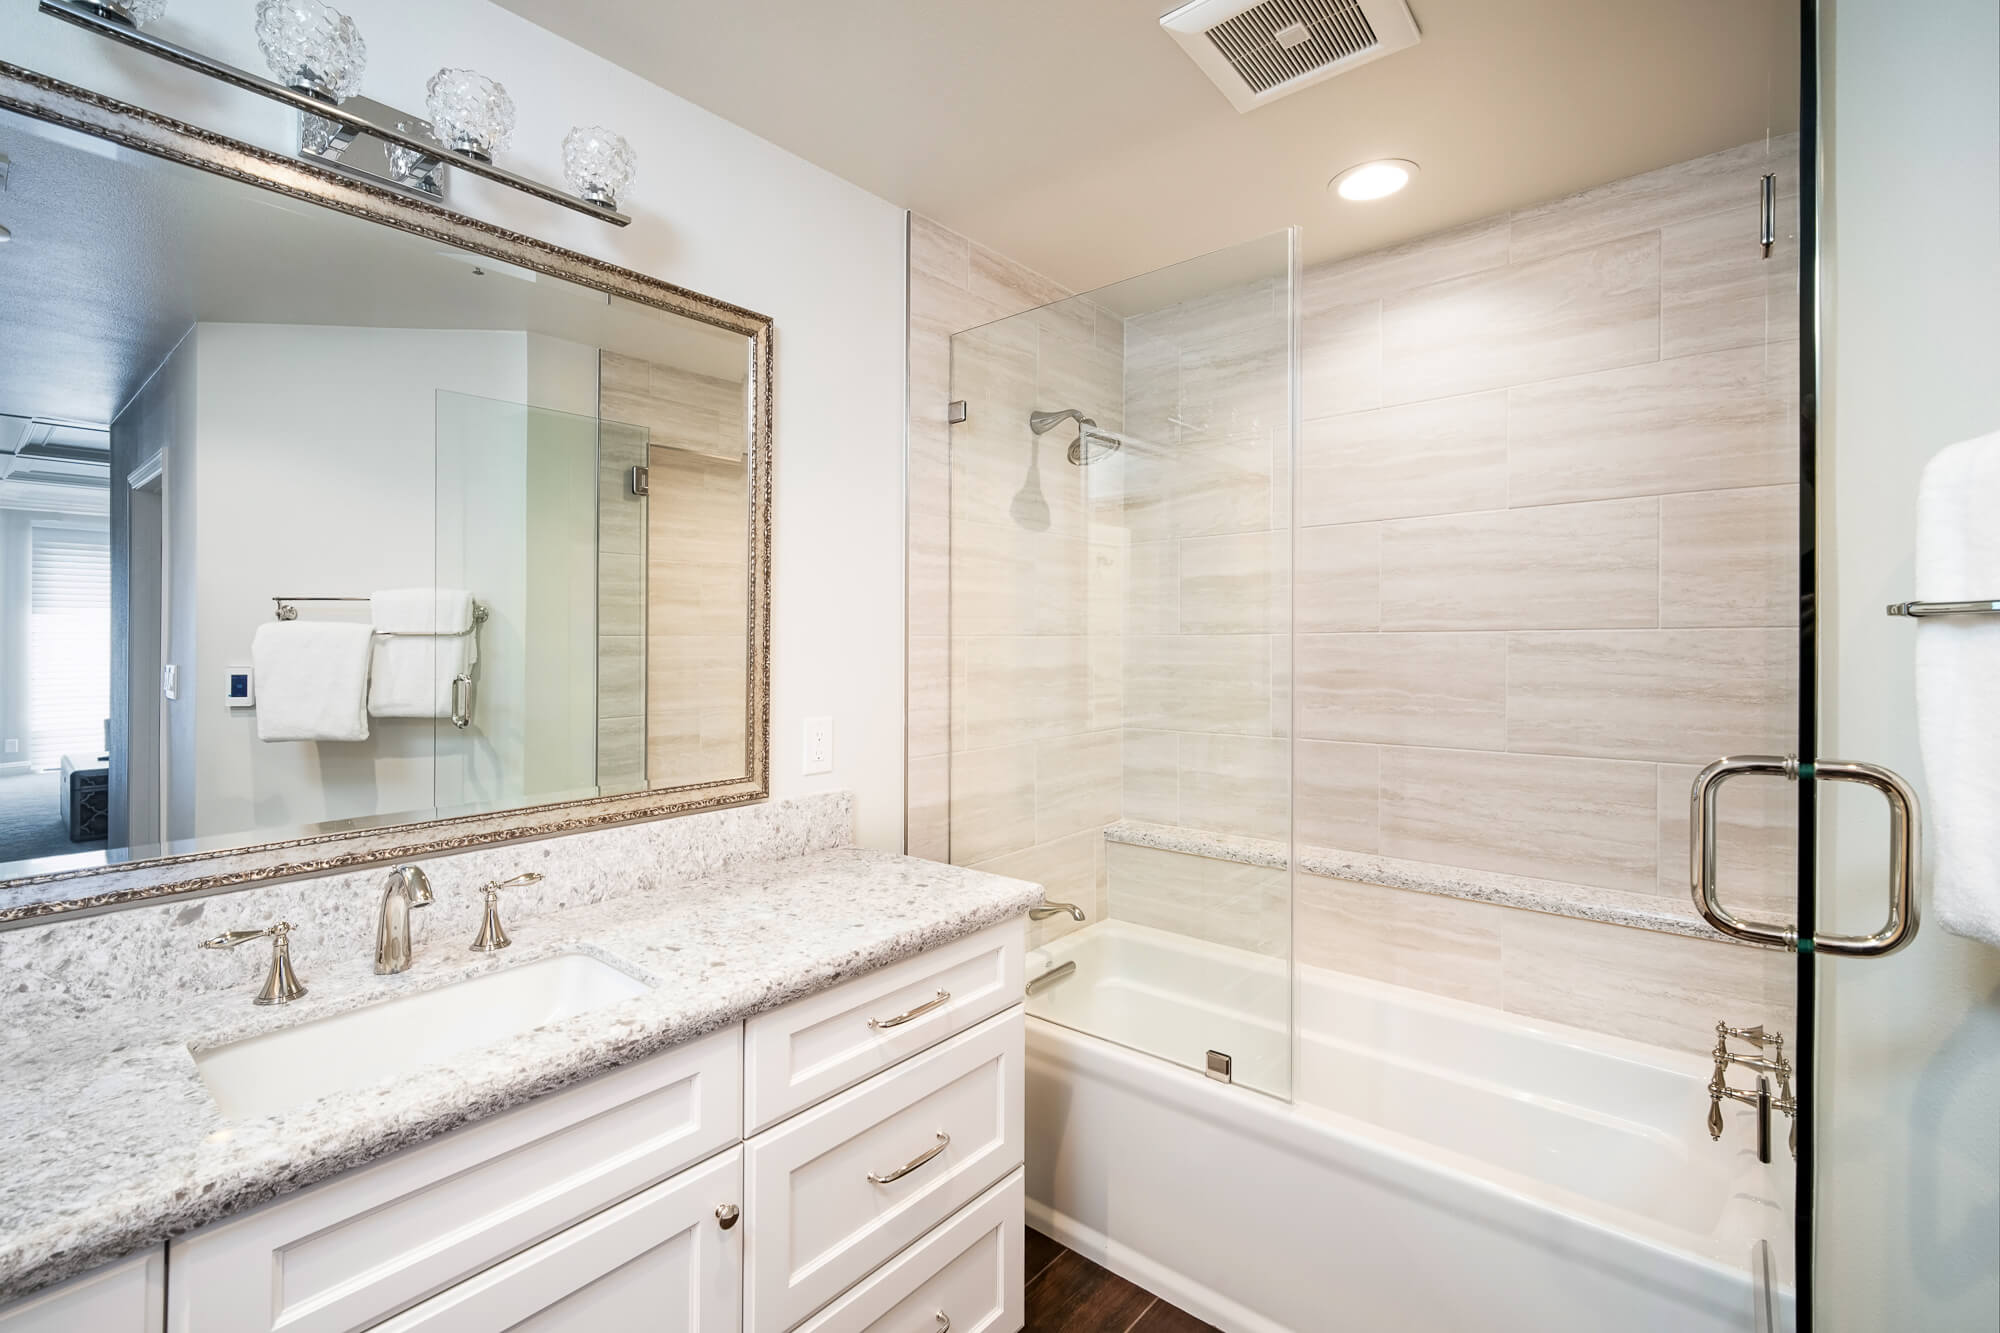 Bathroom Remodel Design Guide Sea Pointe Construction